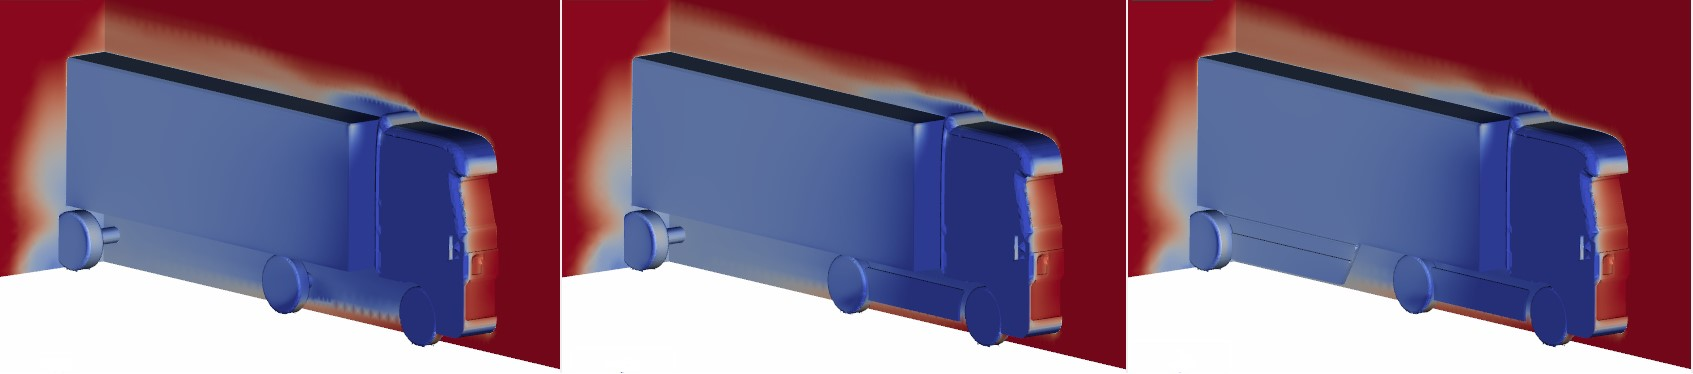 truck side skirts cfd simulation